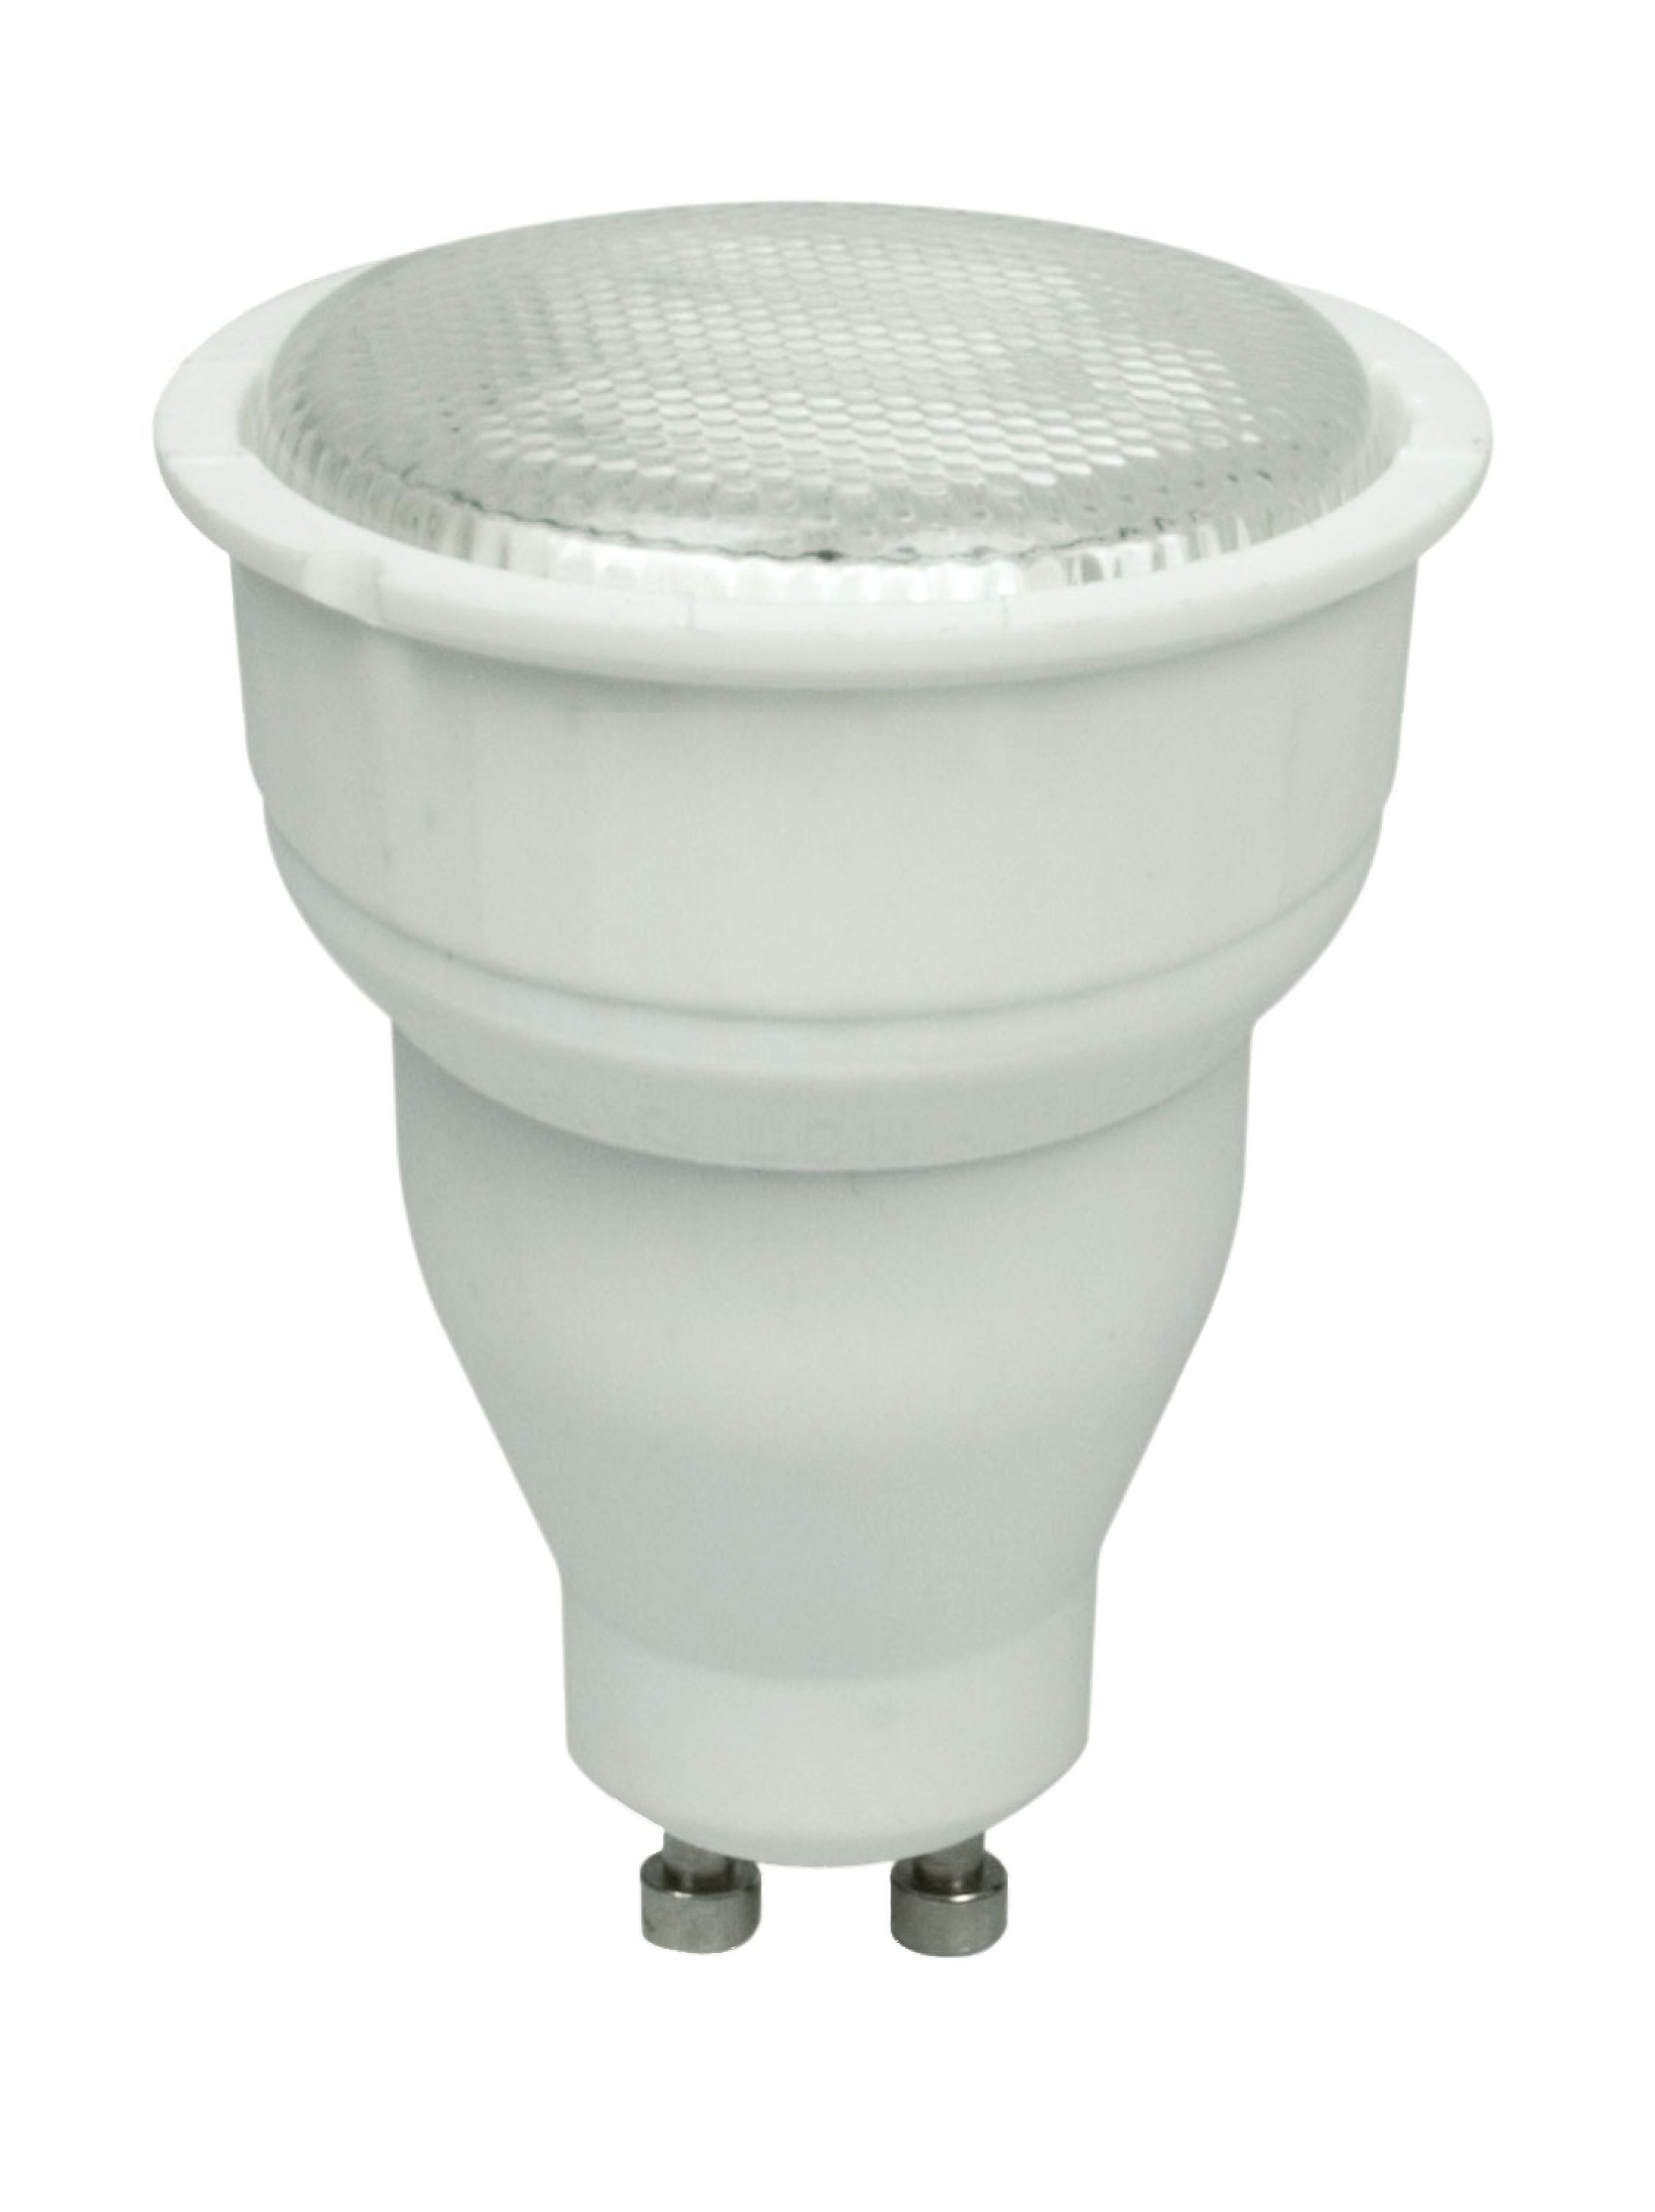 500w 240v 220mm Jacketed Catering Lamp